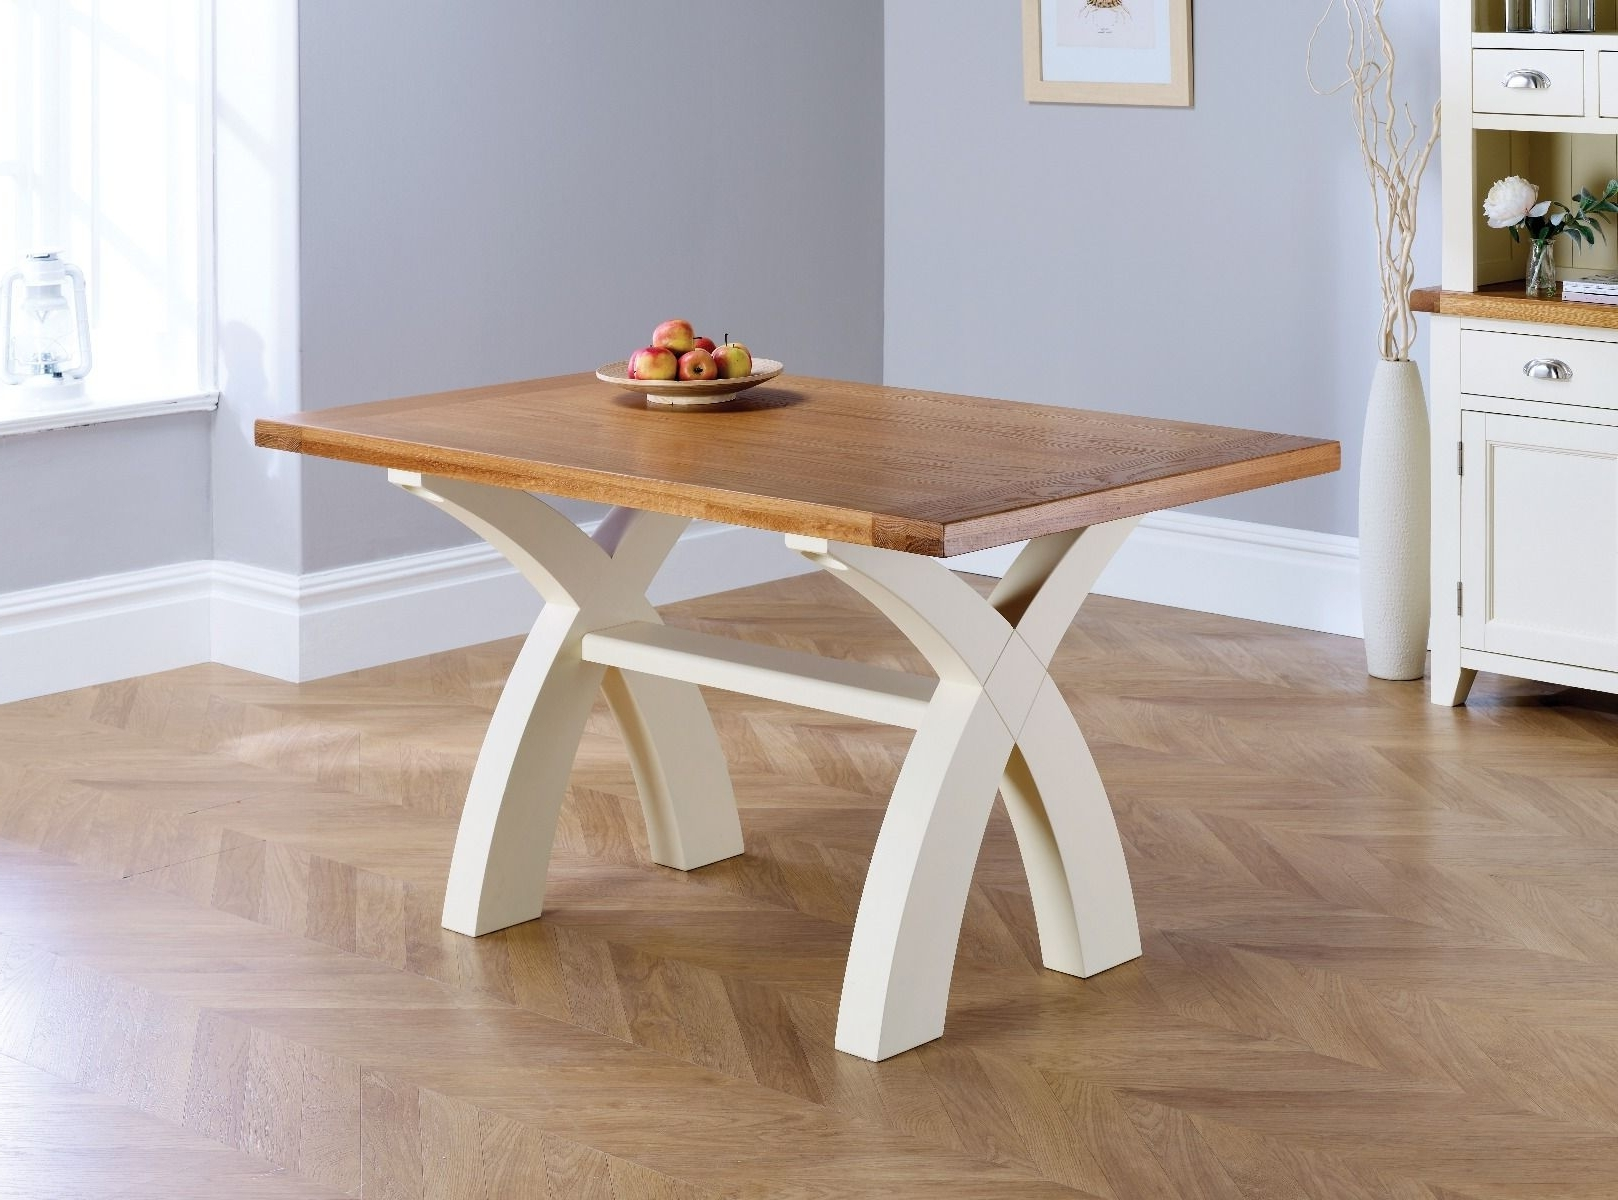 Fashionable Cream And Wood Dining Tables Inside Country Oak 140Cm Cream Painted Cross Leg Square Ended Dining Table (View 22 of 25)